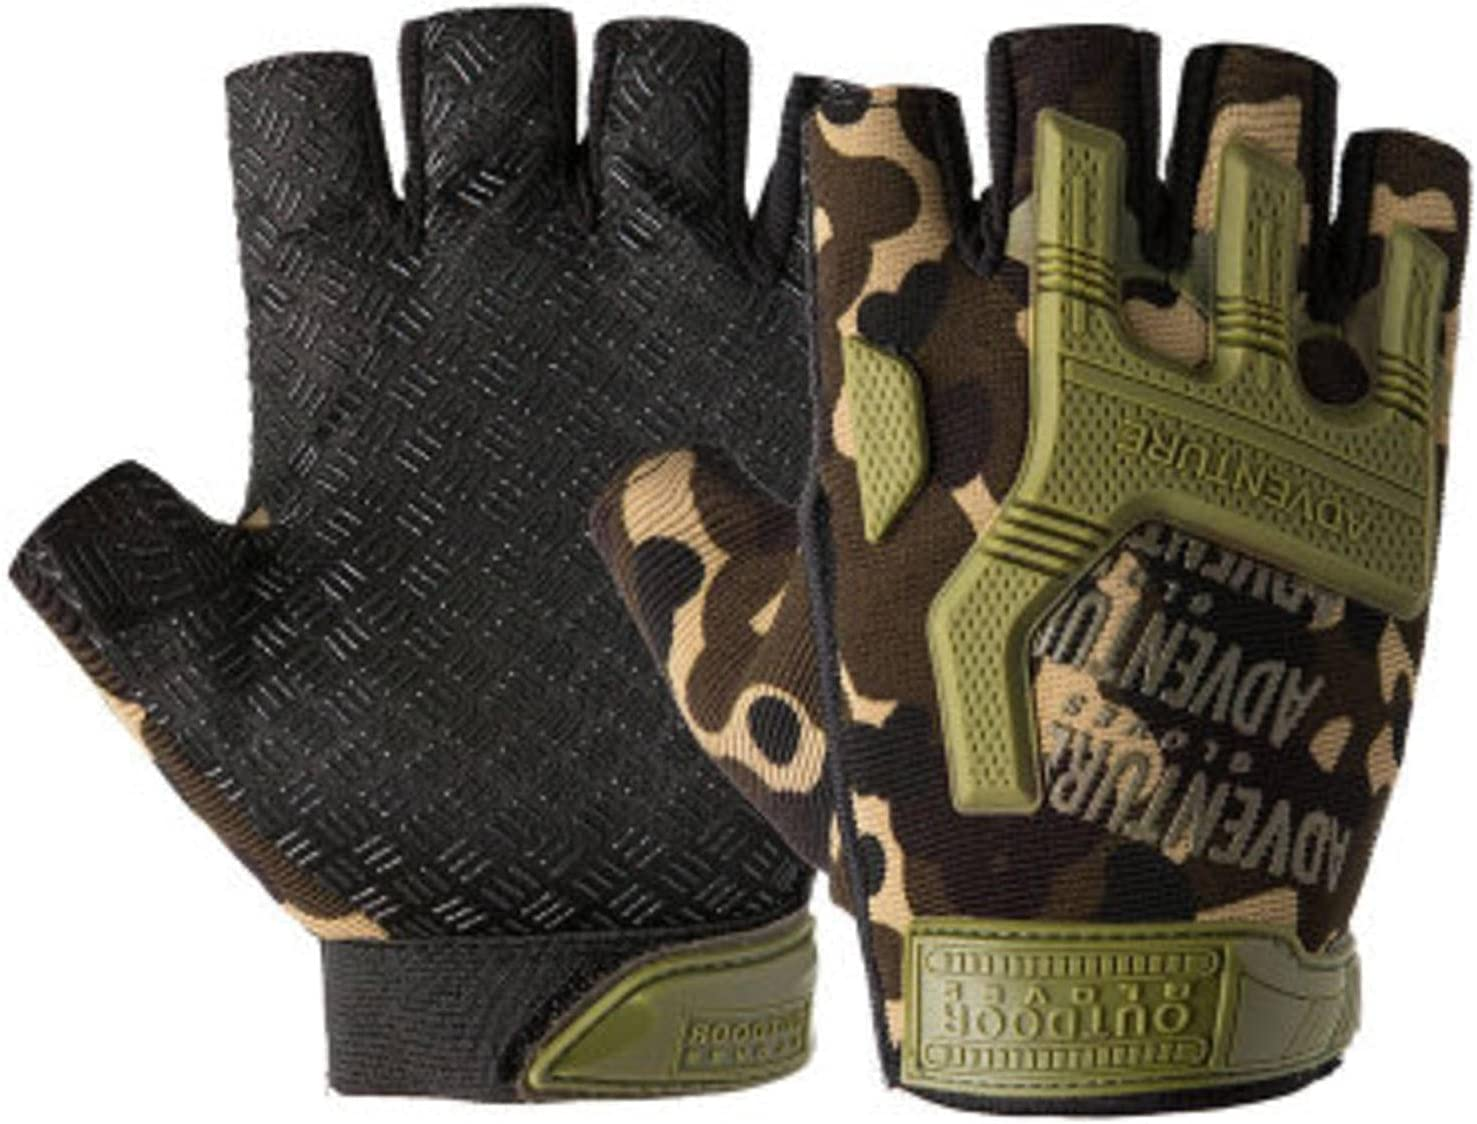 N\C Rubber Max 73% OFF Fingerless Gloves Protect Airsoft Indianapolis Mall Mo Paintball Riding